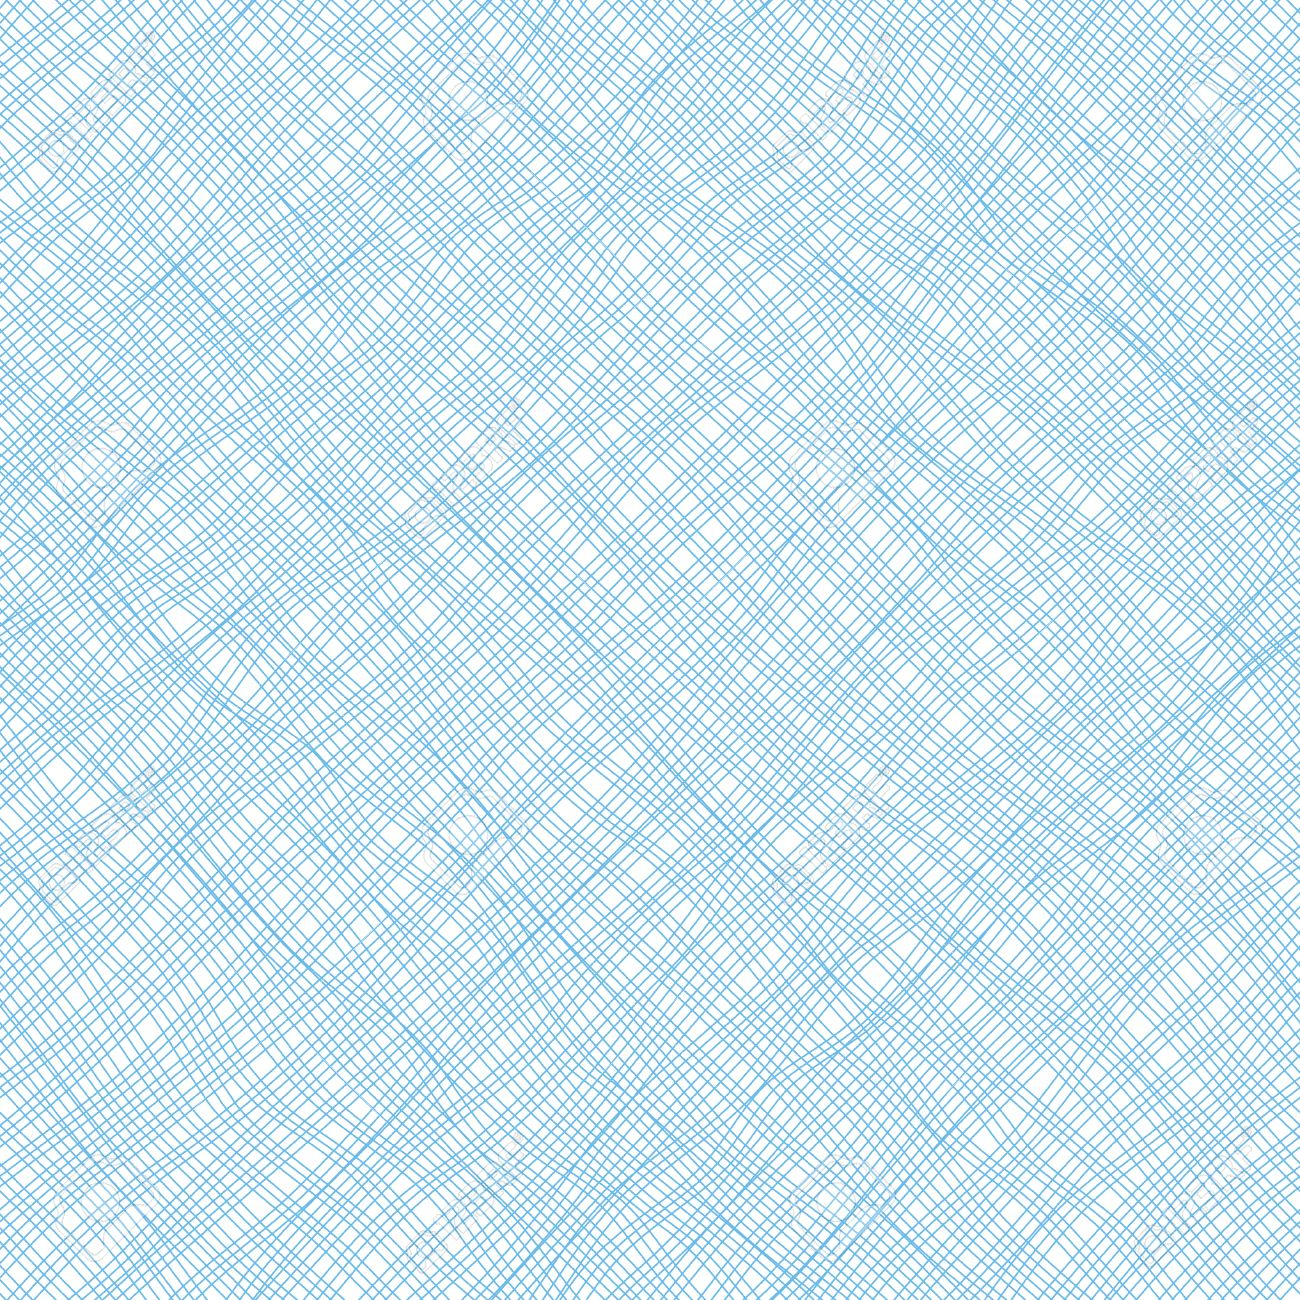 Textile Texture Background Seamless Pattern For Web Design 1300x1300